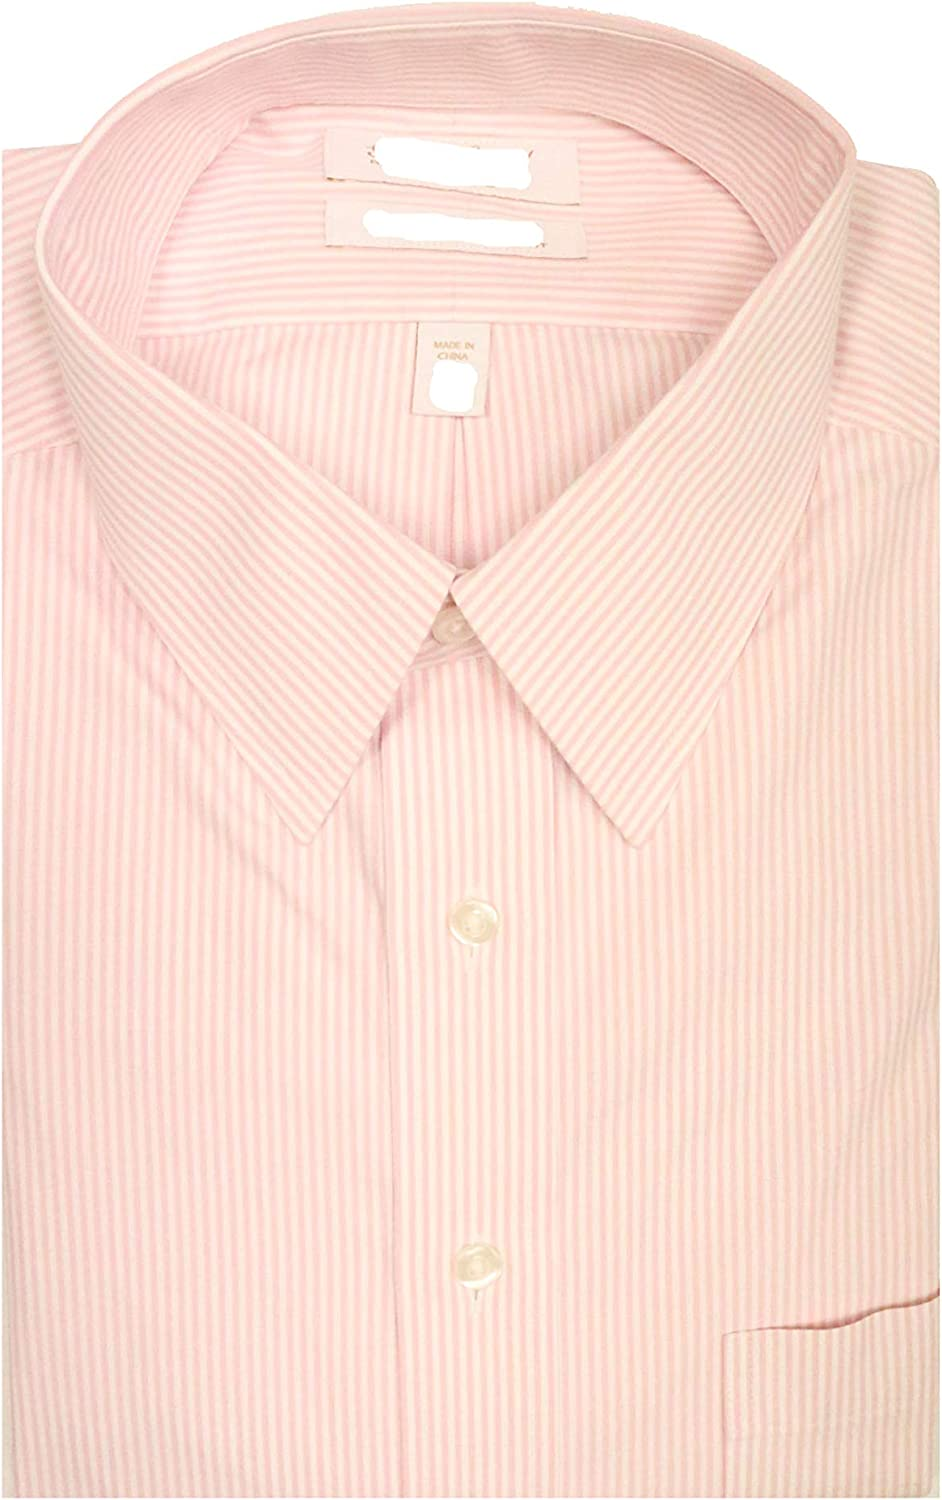 Gold Label Roundtree & Yorke Non-Iron Fitted Point Collar Stripe Dress Shirt F85DG146 Pink (17-36)